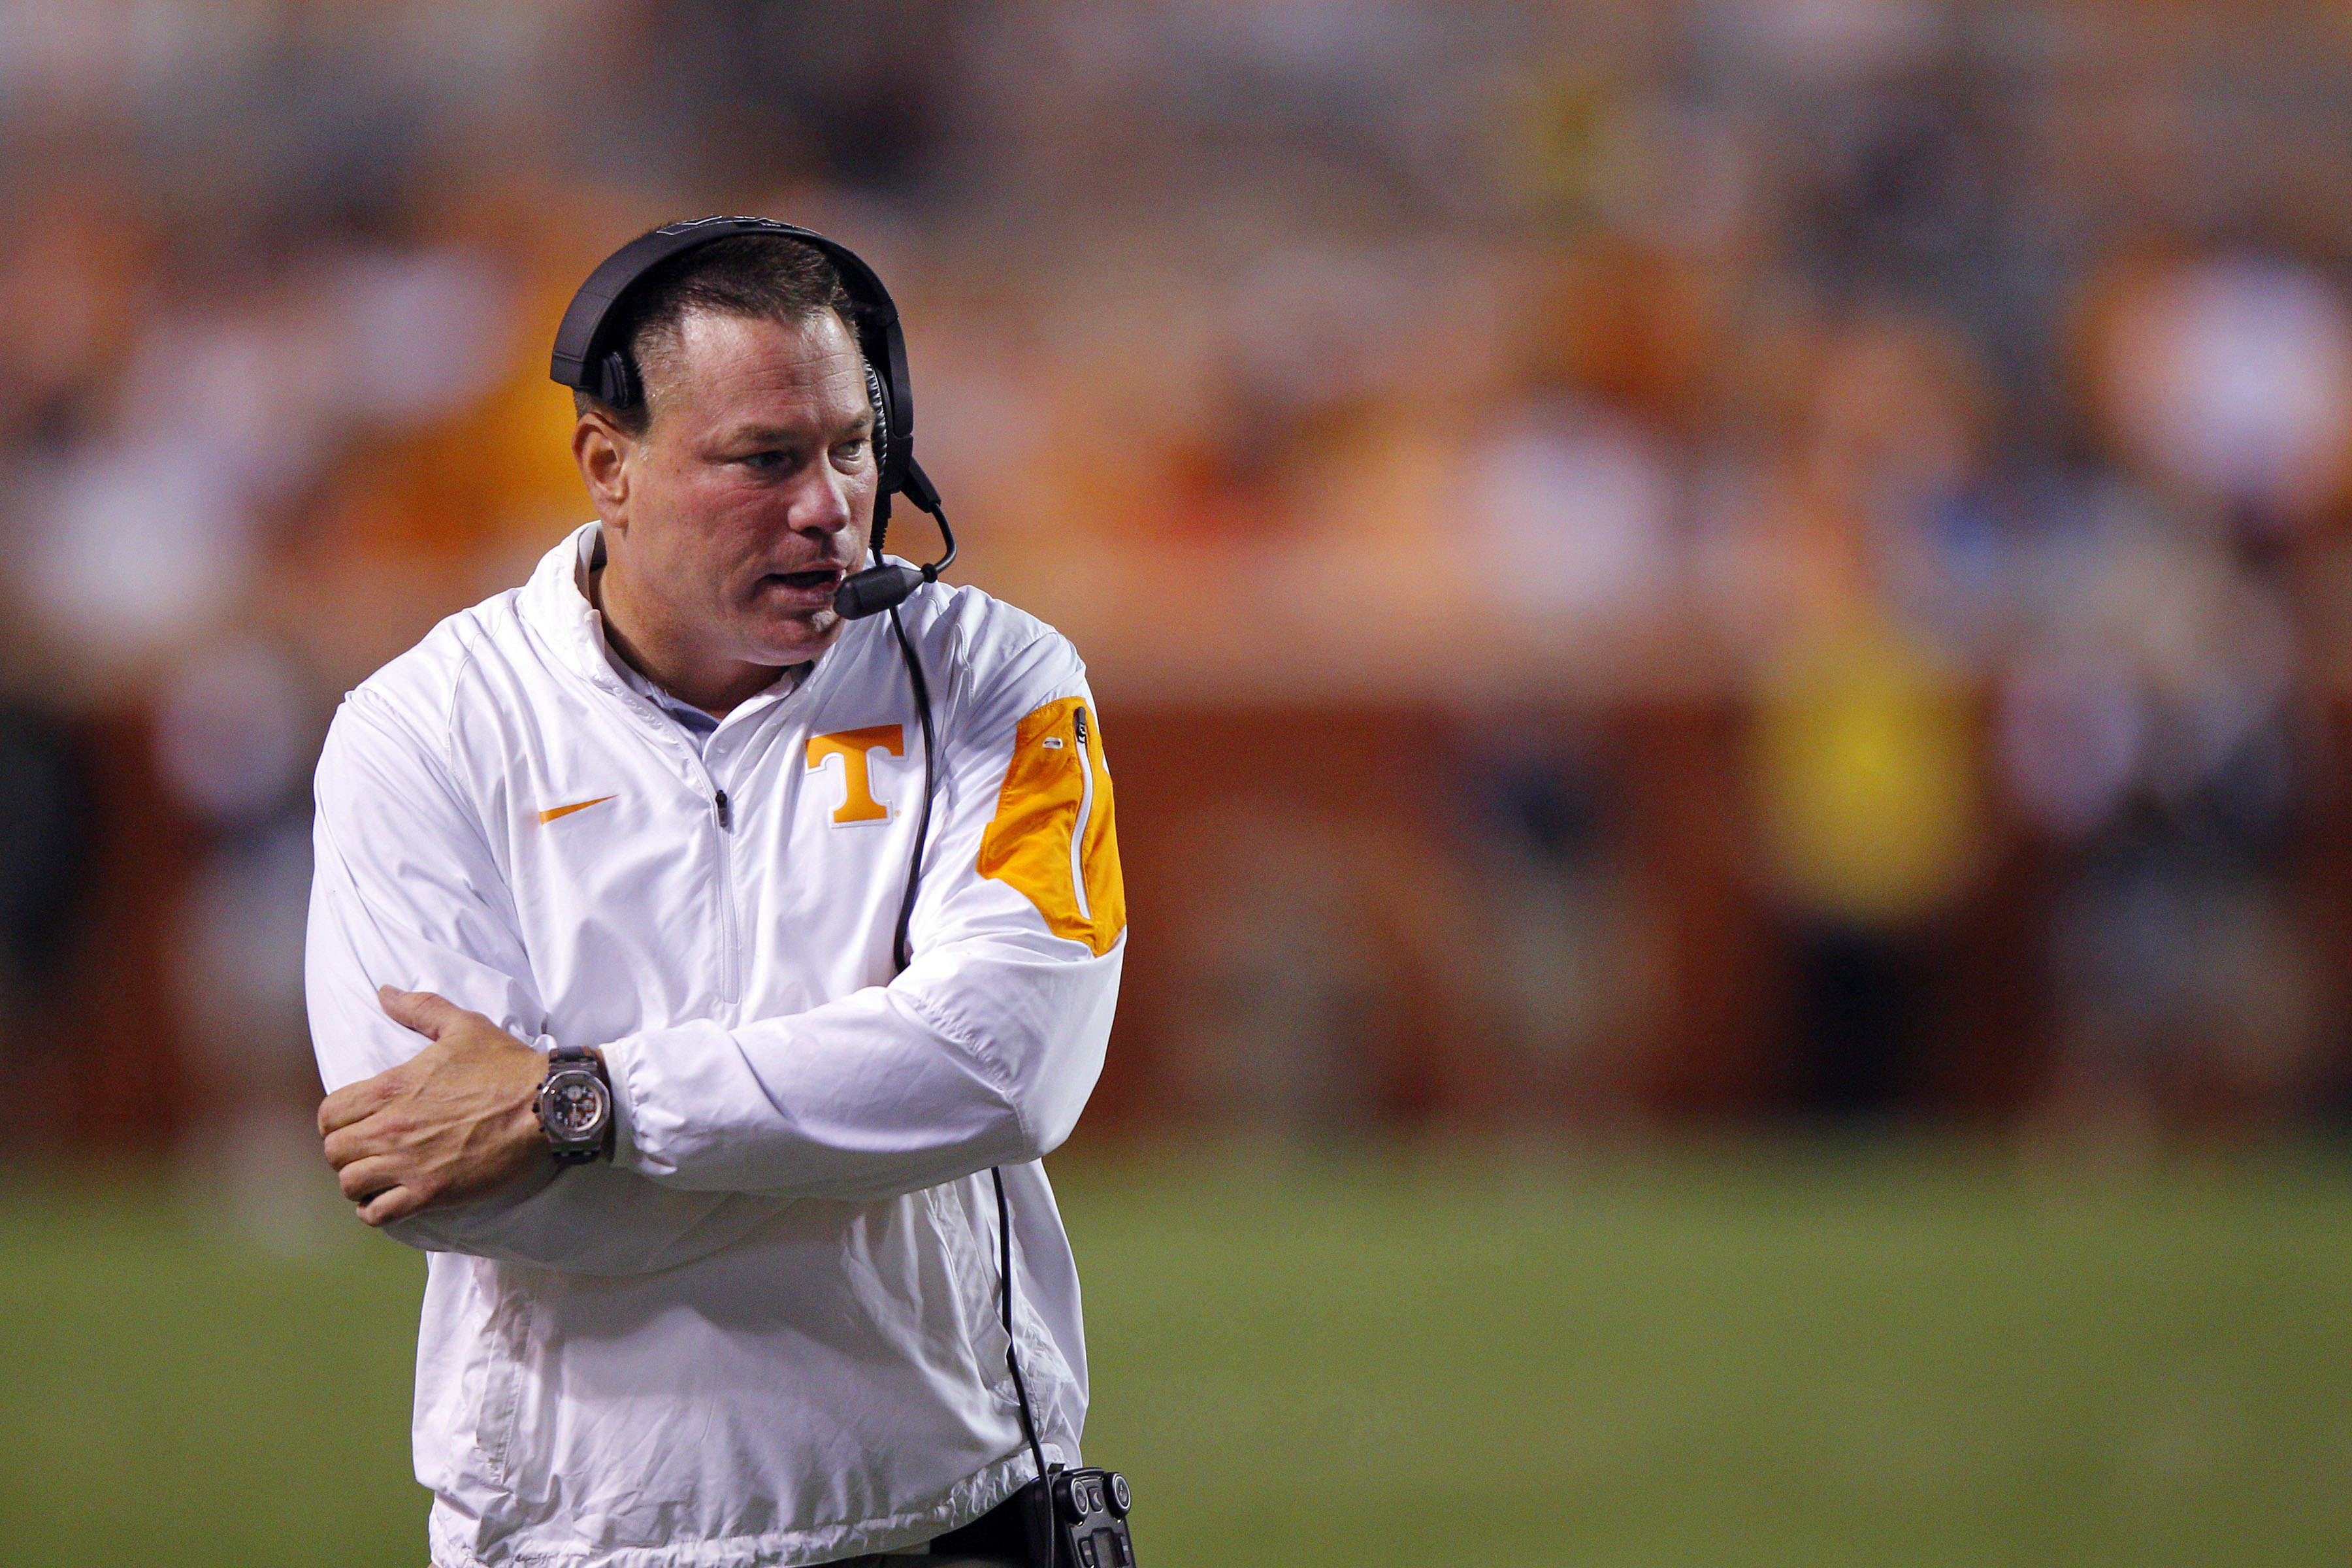 Tennessee head coach Butch Jones looks on from the sideline of an NCAA college football game against Oklahoma, Saturday, Sept. 12, 2015 in Knoxville, Tenn. Oklahoma won 31-24 in double overtime. (AP Photo/Wade Payne)